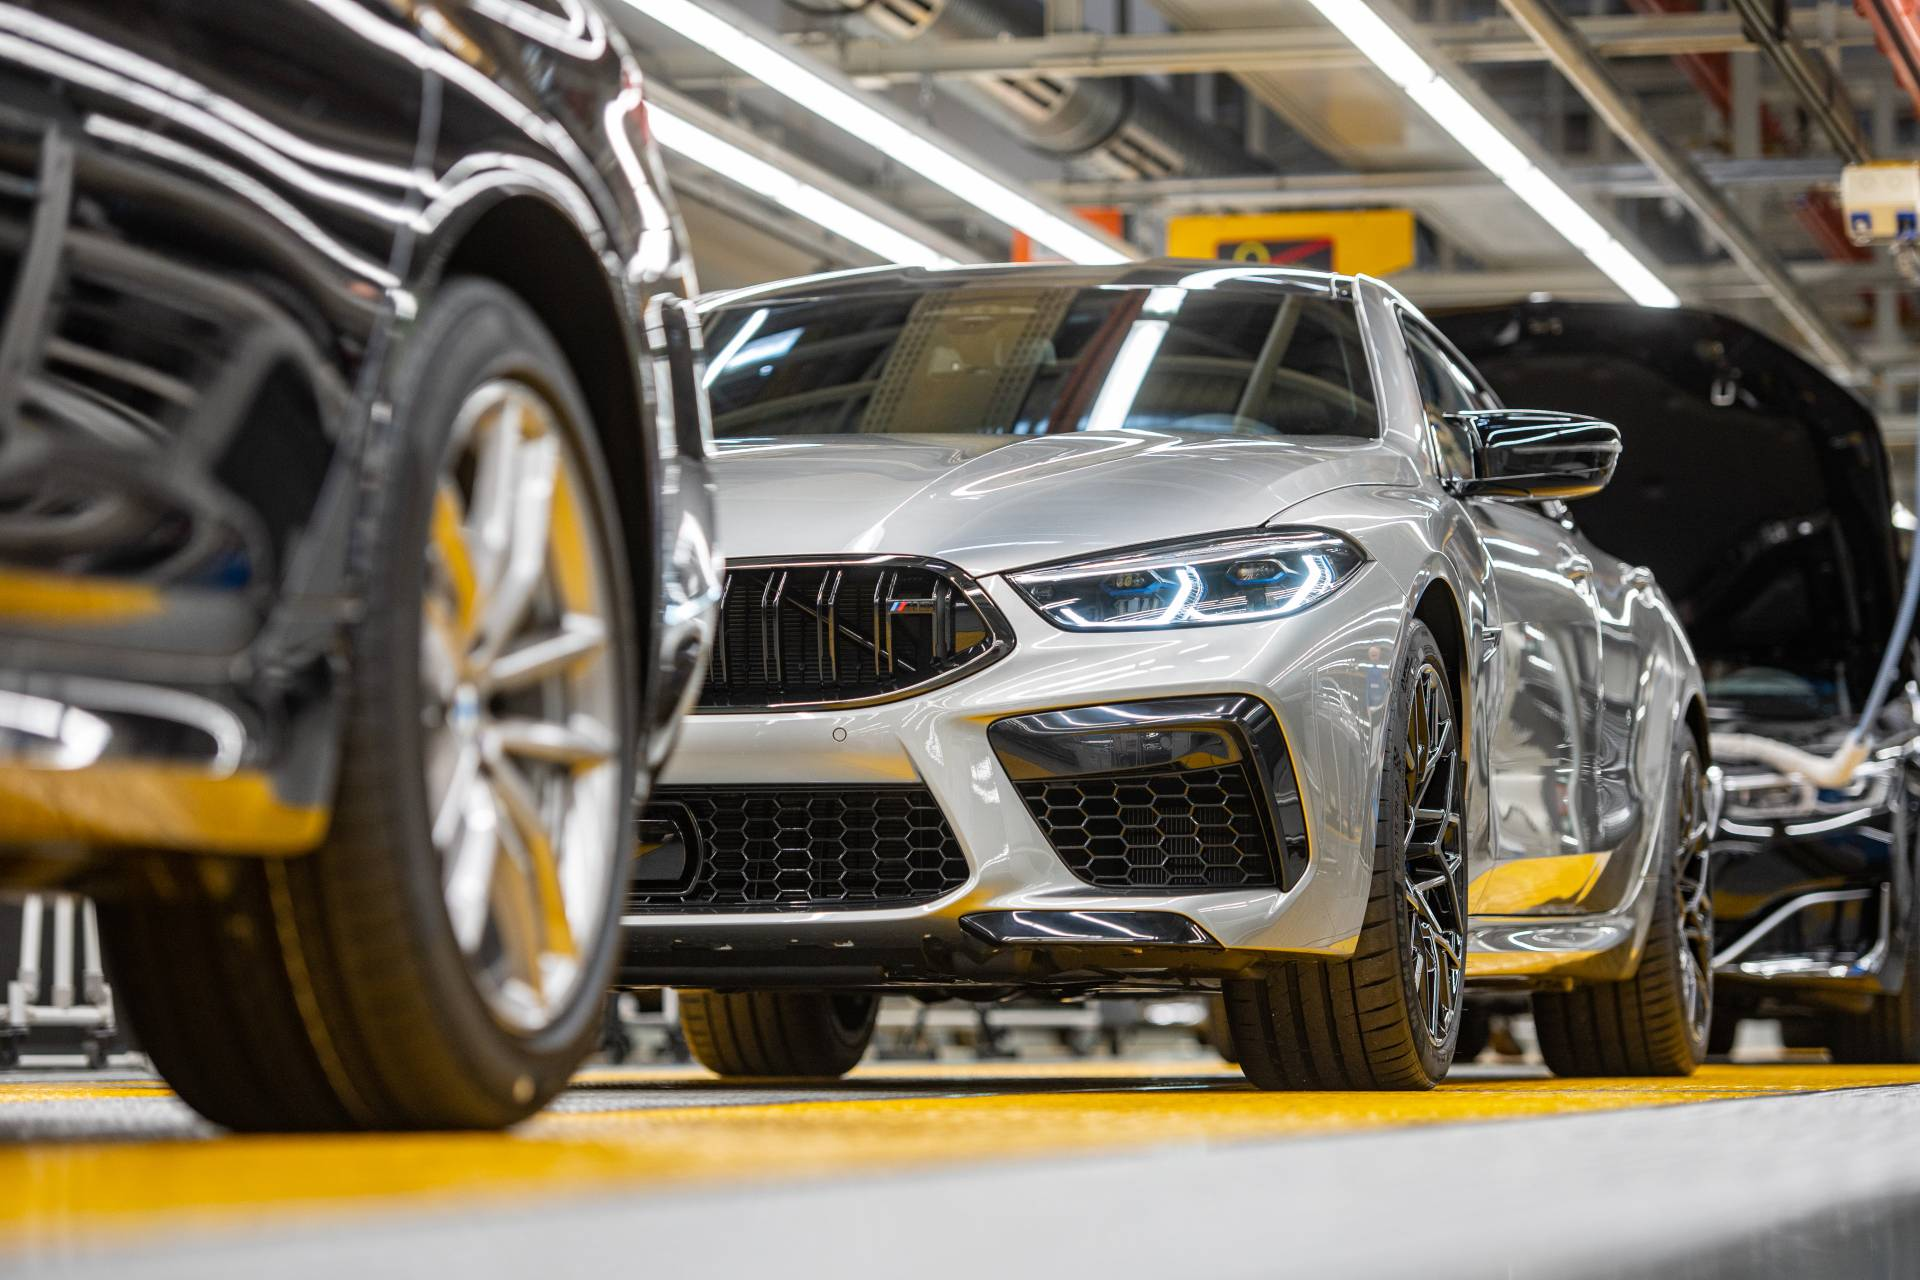 BMW-M8-Gran-Coupe-production-plant-factory-2